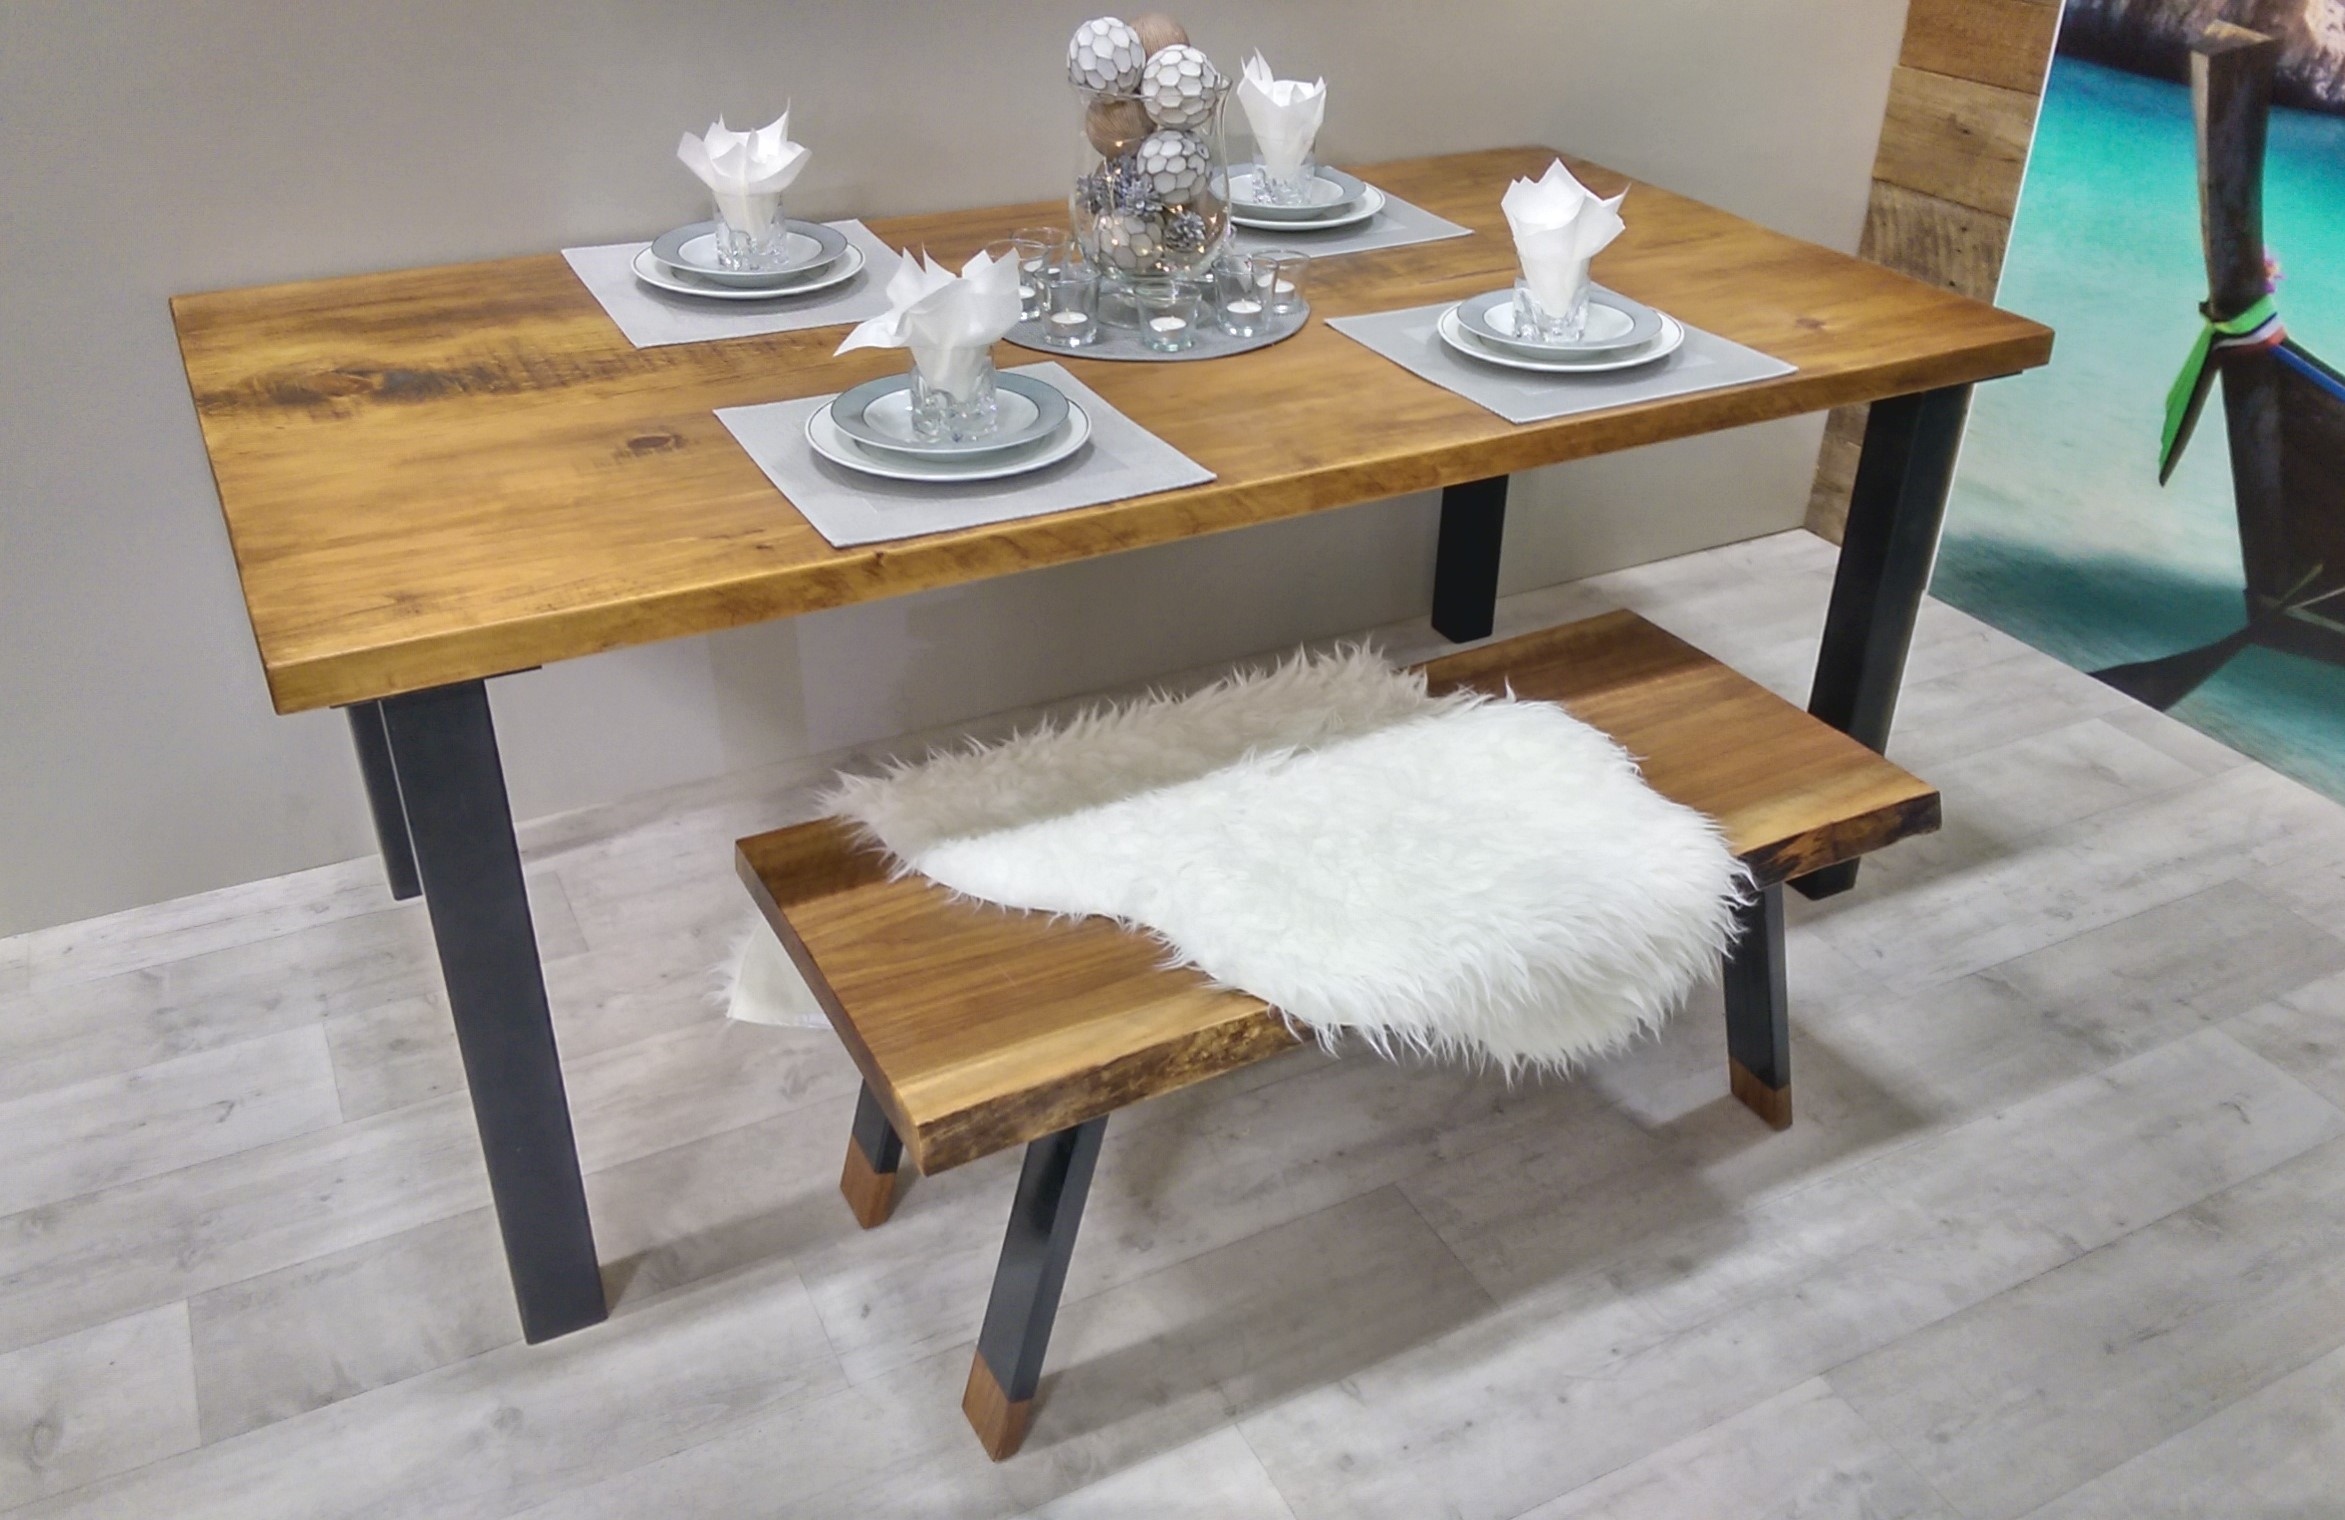 Table de cuisine rustika en bois m tal table d ner for Table cuisine en bois